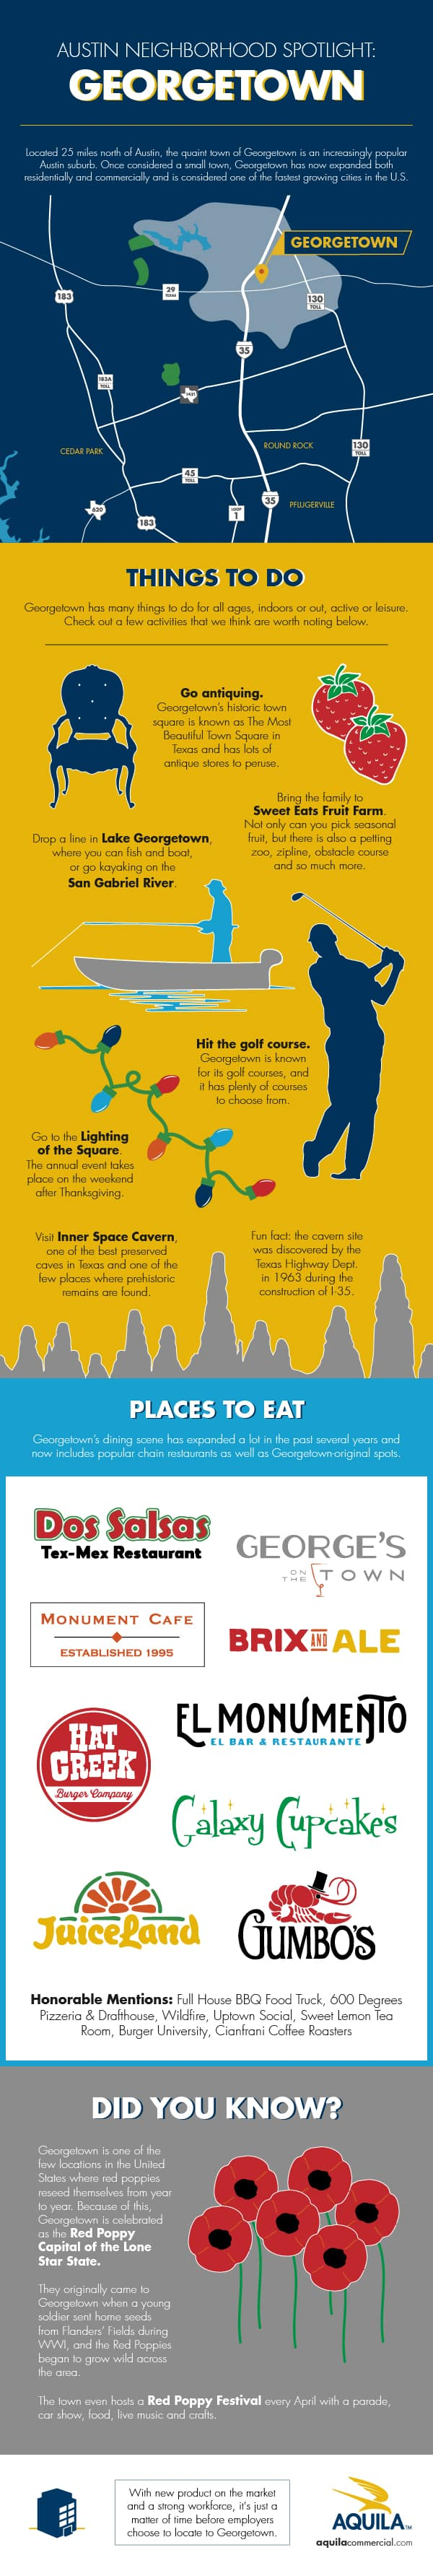 Infographic: What to do & where to eat in Georgetown, Texas